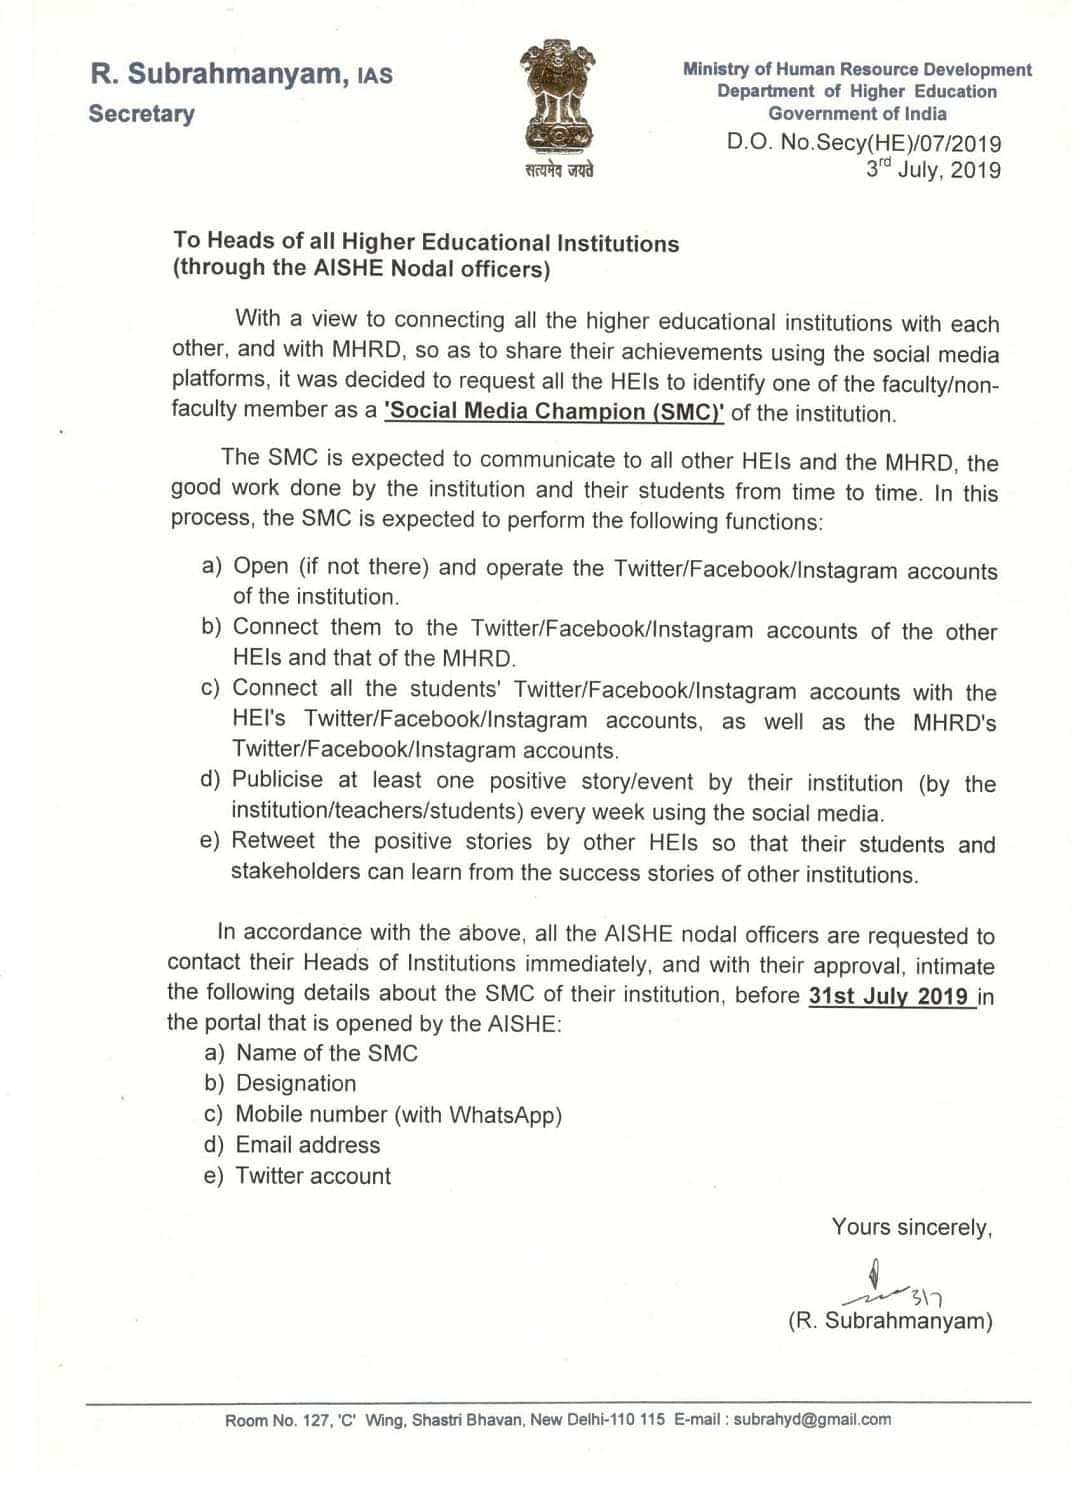 A copy of the letter by the HRD Ministry to all higher educational institutions in India.